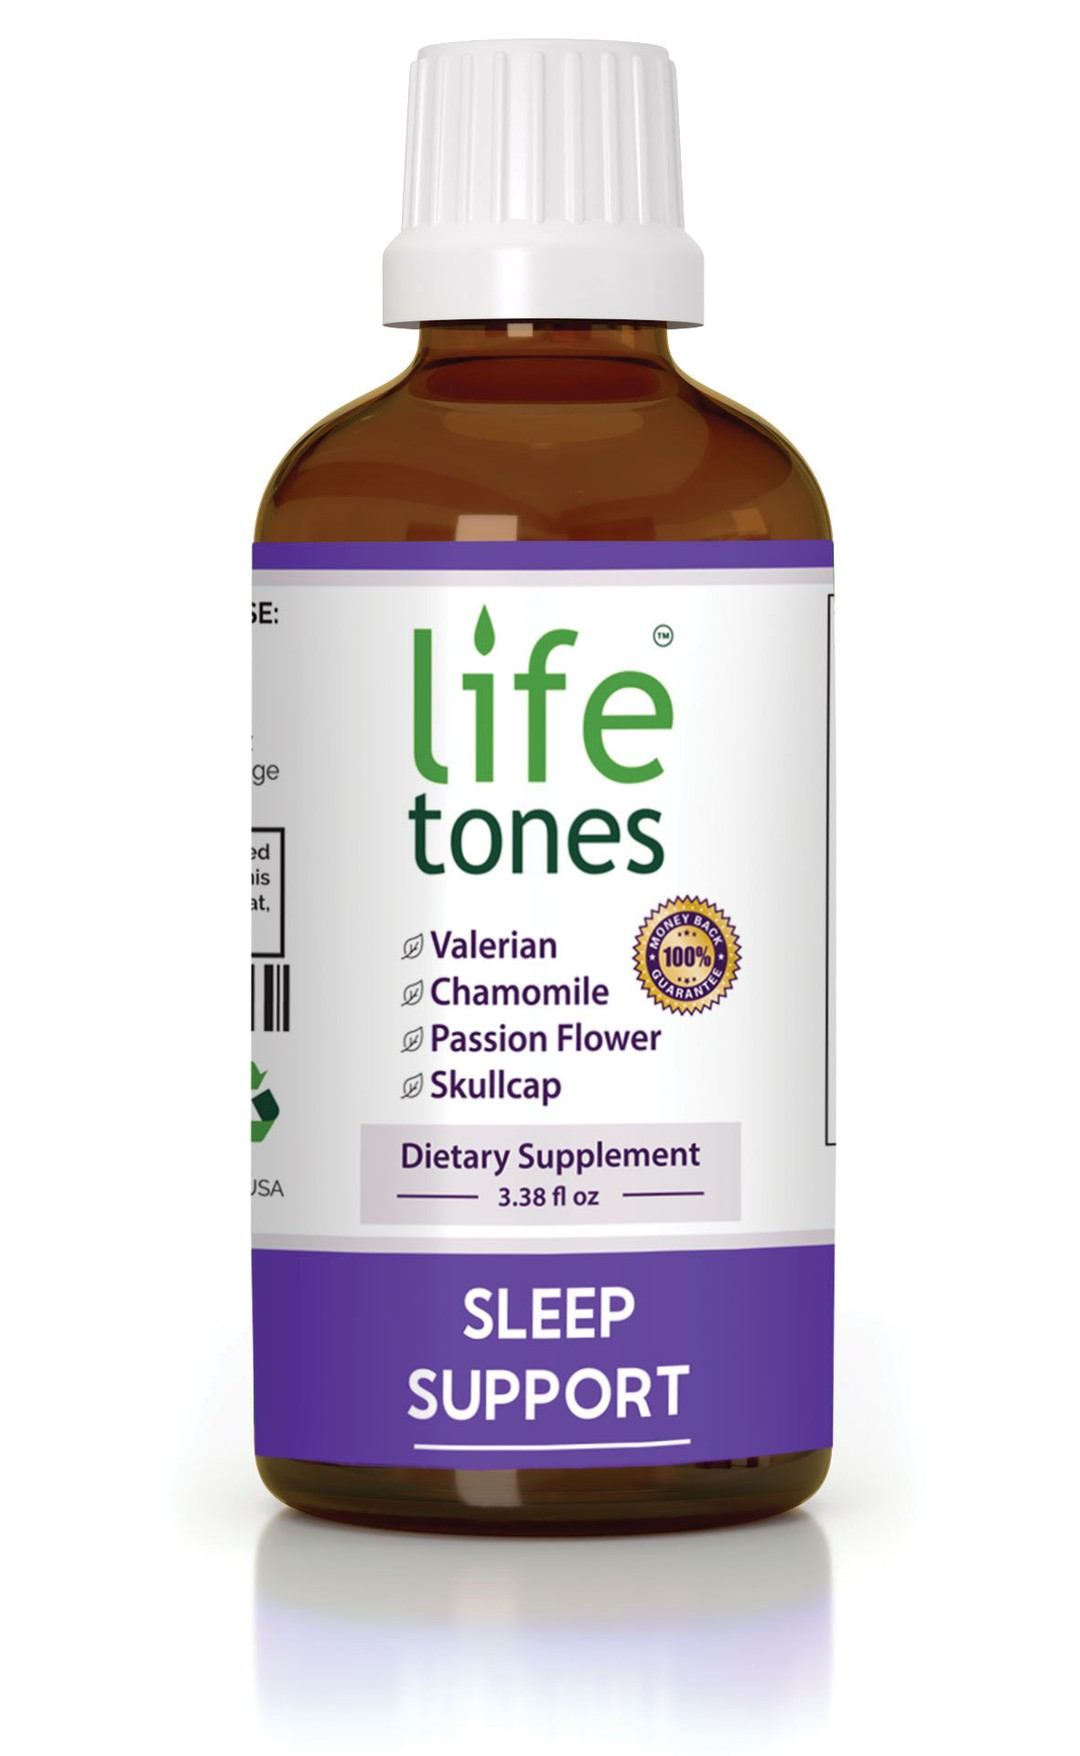 Lifetones Sleep Support